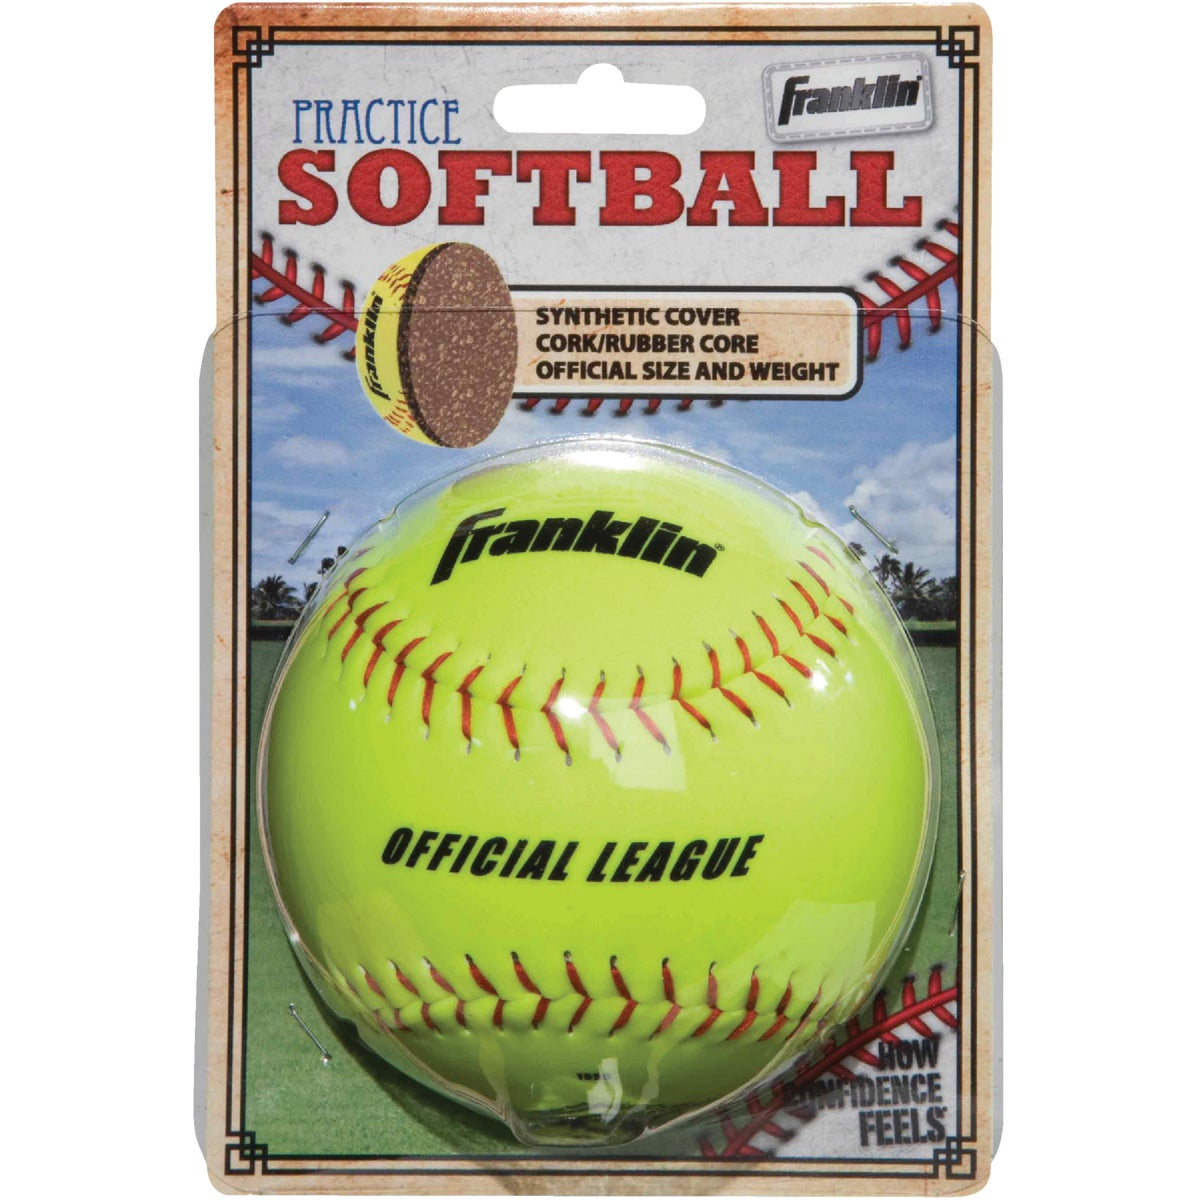 SYNTHETIC SOFTBALL - 10981 by Franklin Sports